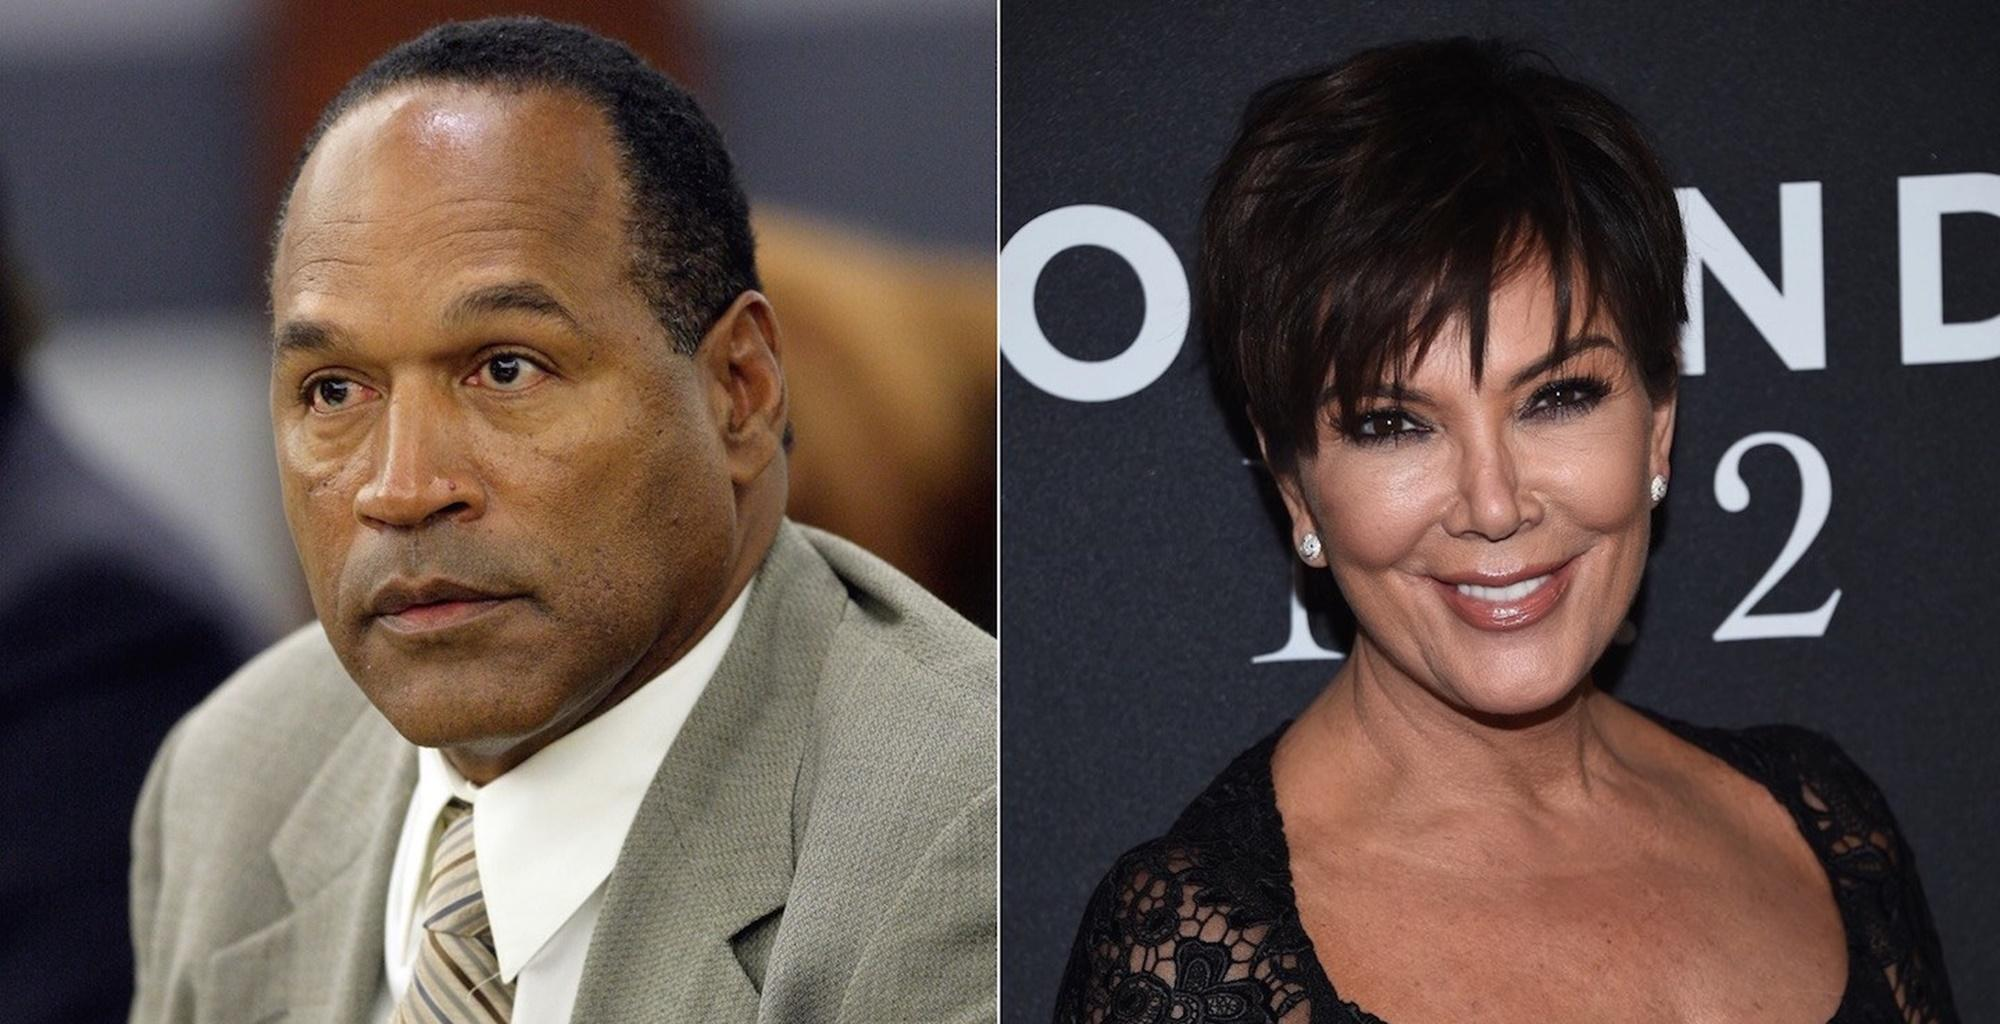 O.J. Simpson Says He Hooked Up With Kris Jenner -- Will This Re-Ignite The Rumors About Khloe Kardashian's Father?